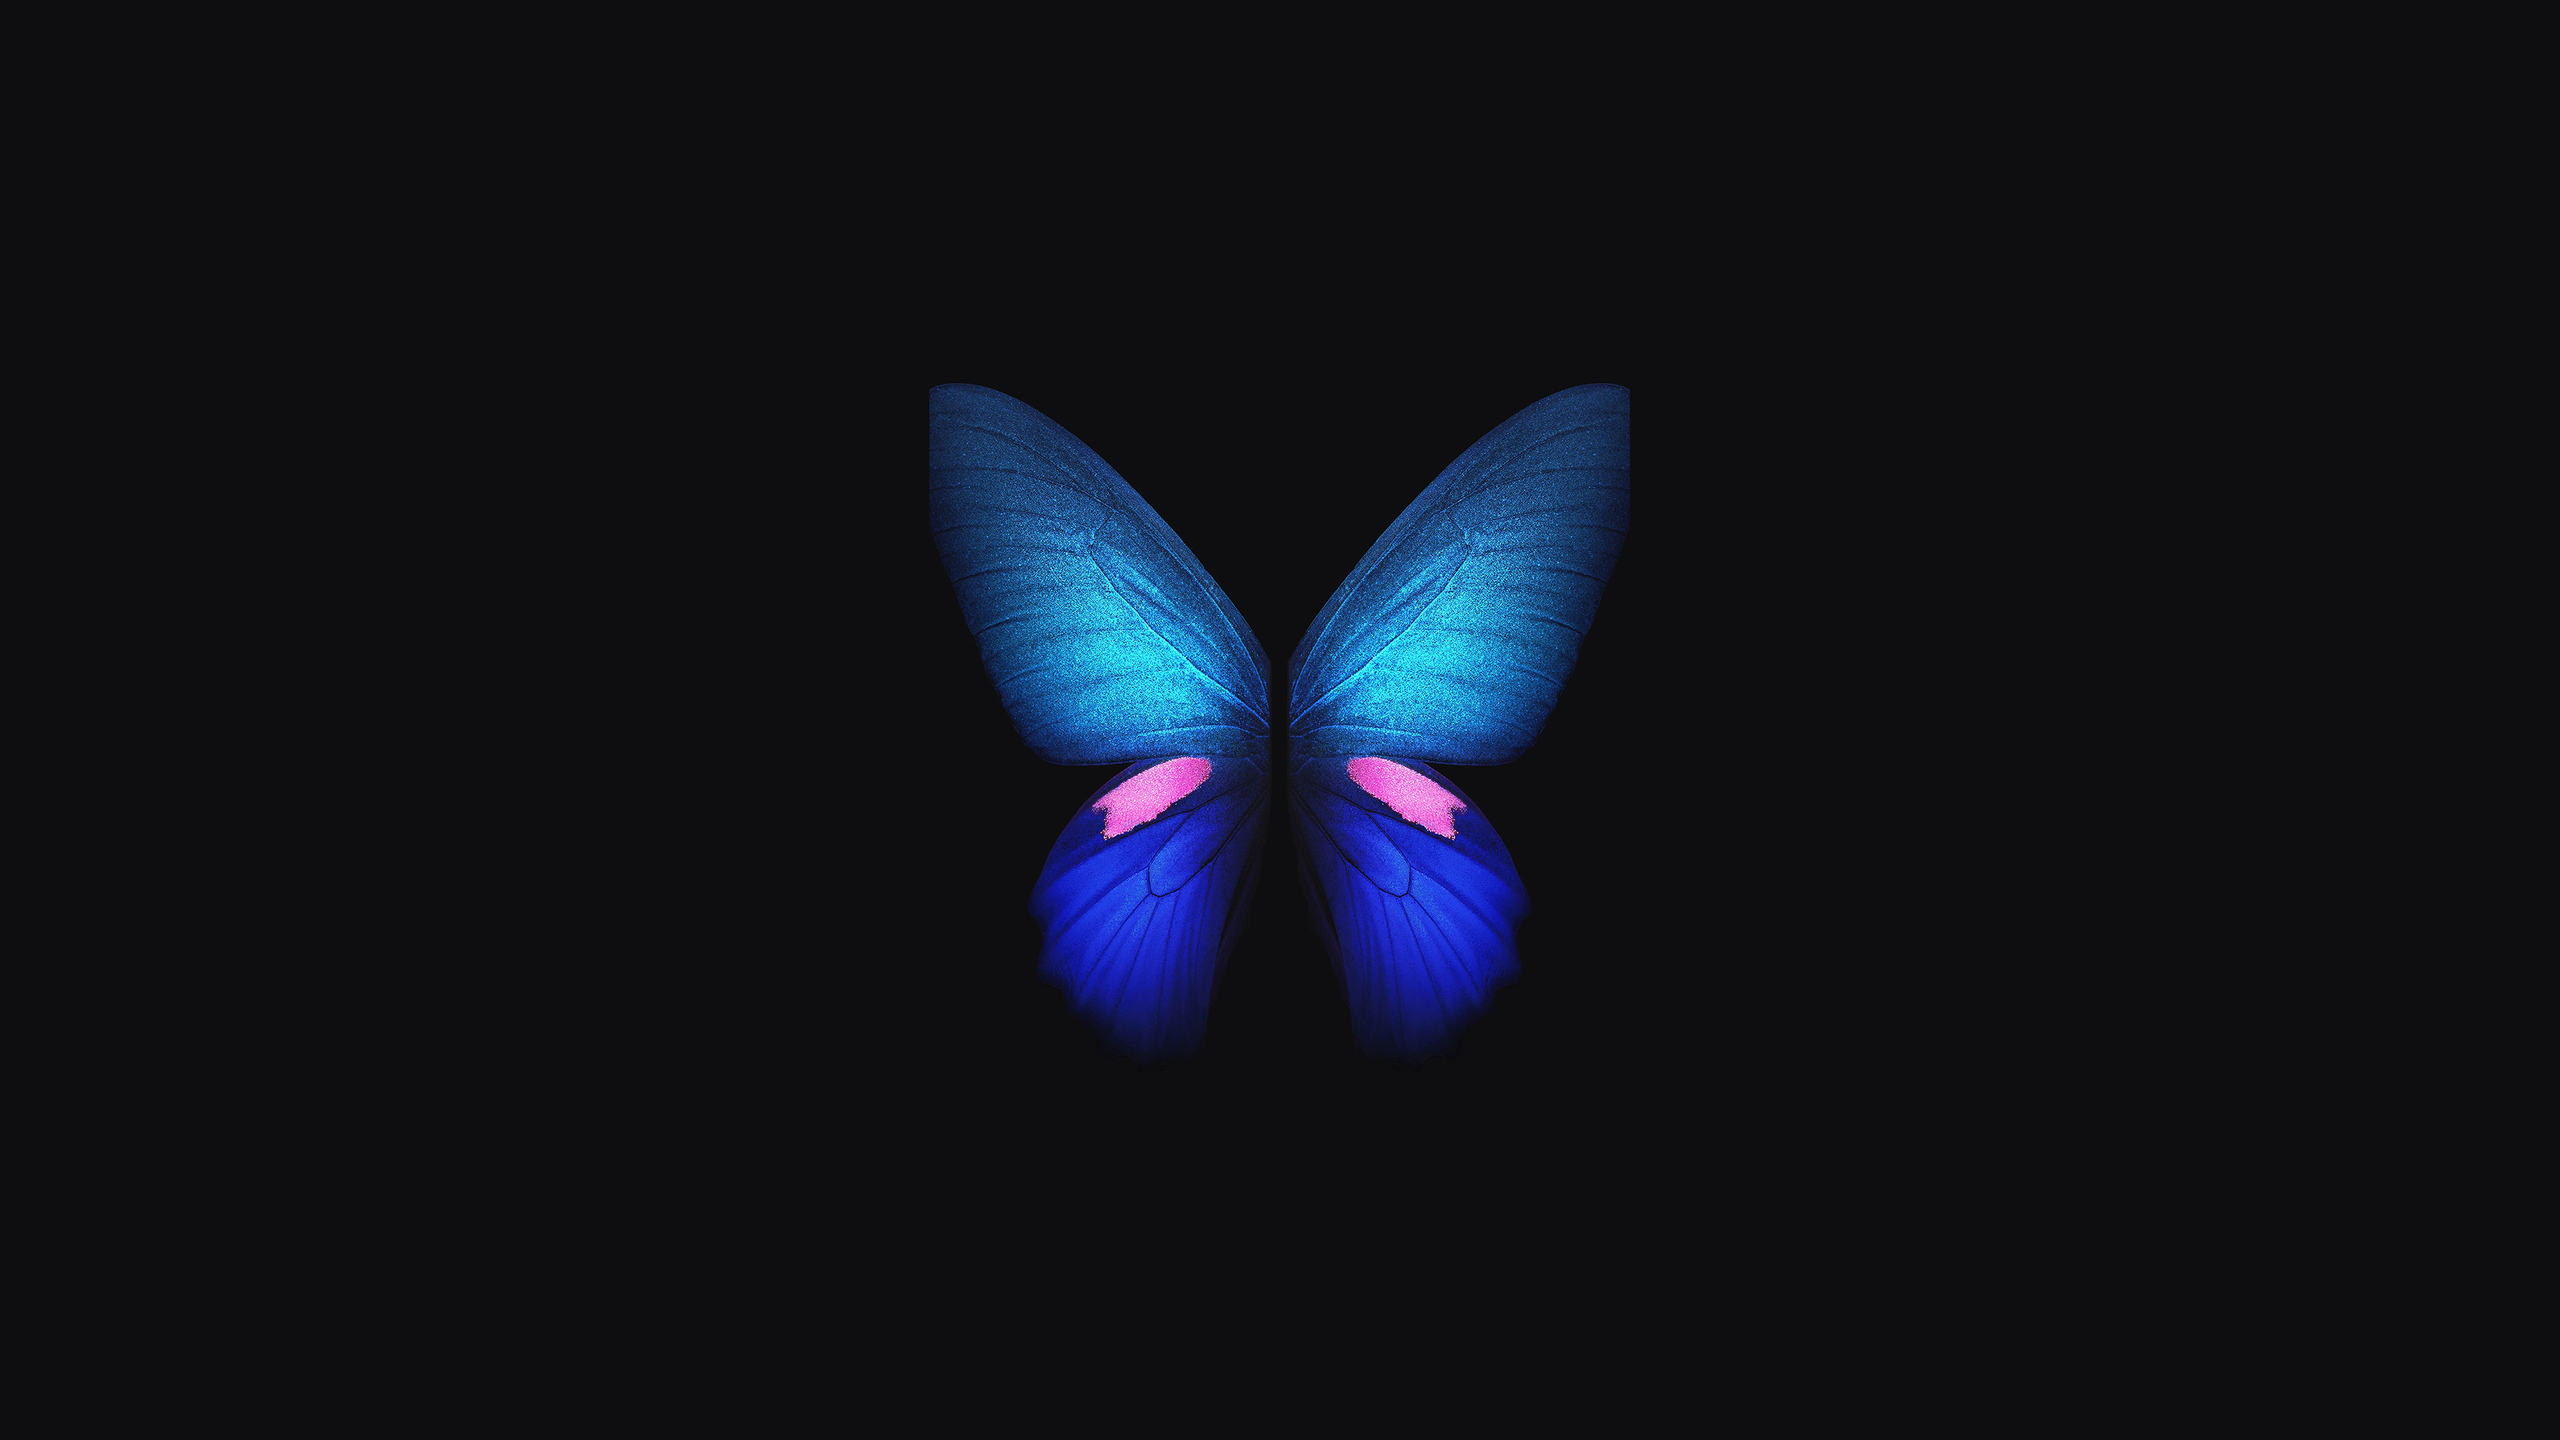 2560x1440 Samsung Galaxy Fold Stock 1440p Resolution Hd 4k Wallpapers Images Backgrounds Photos And Pictures